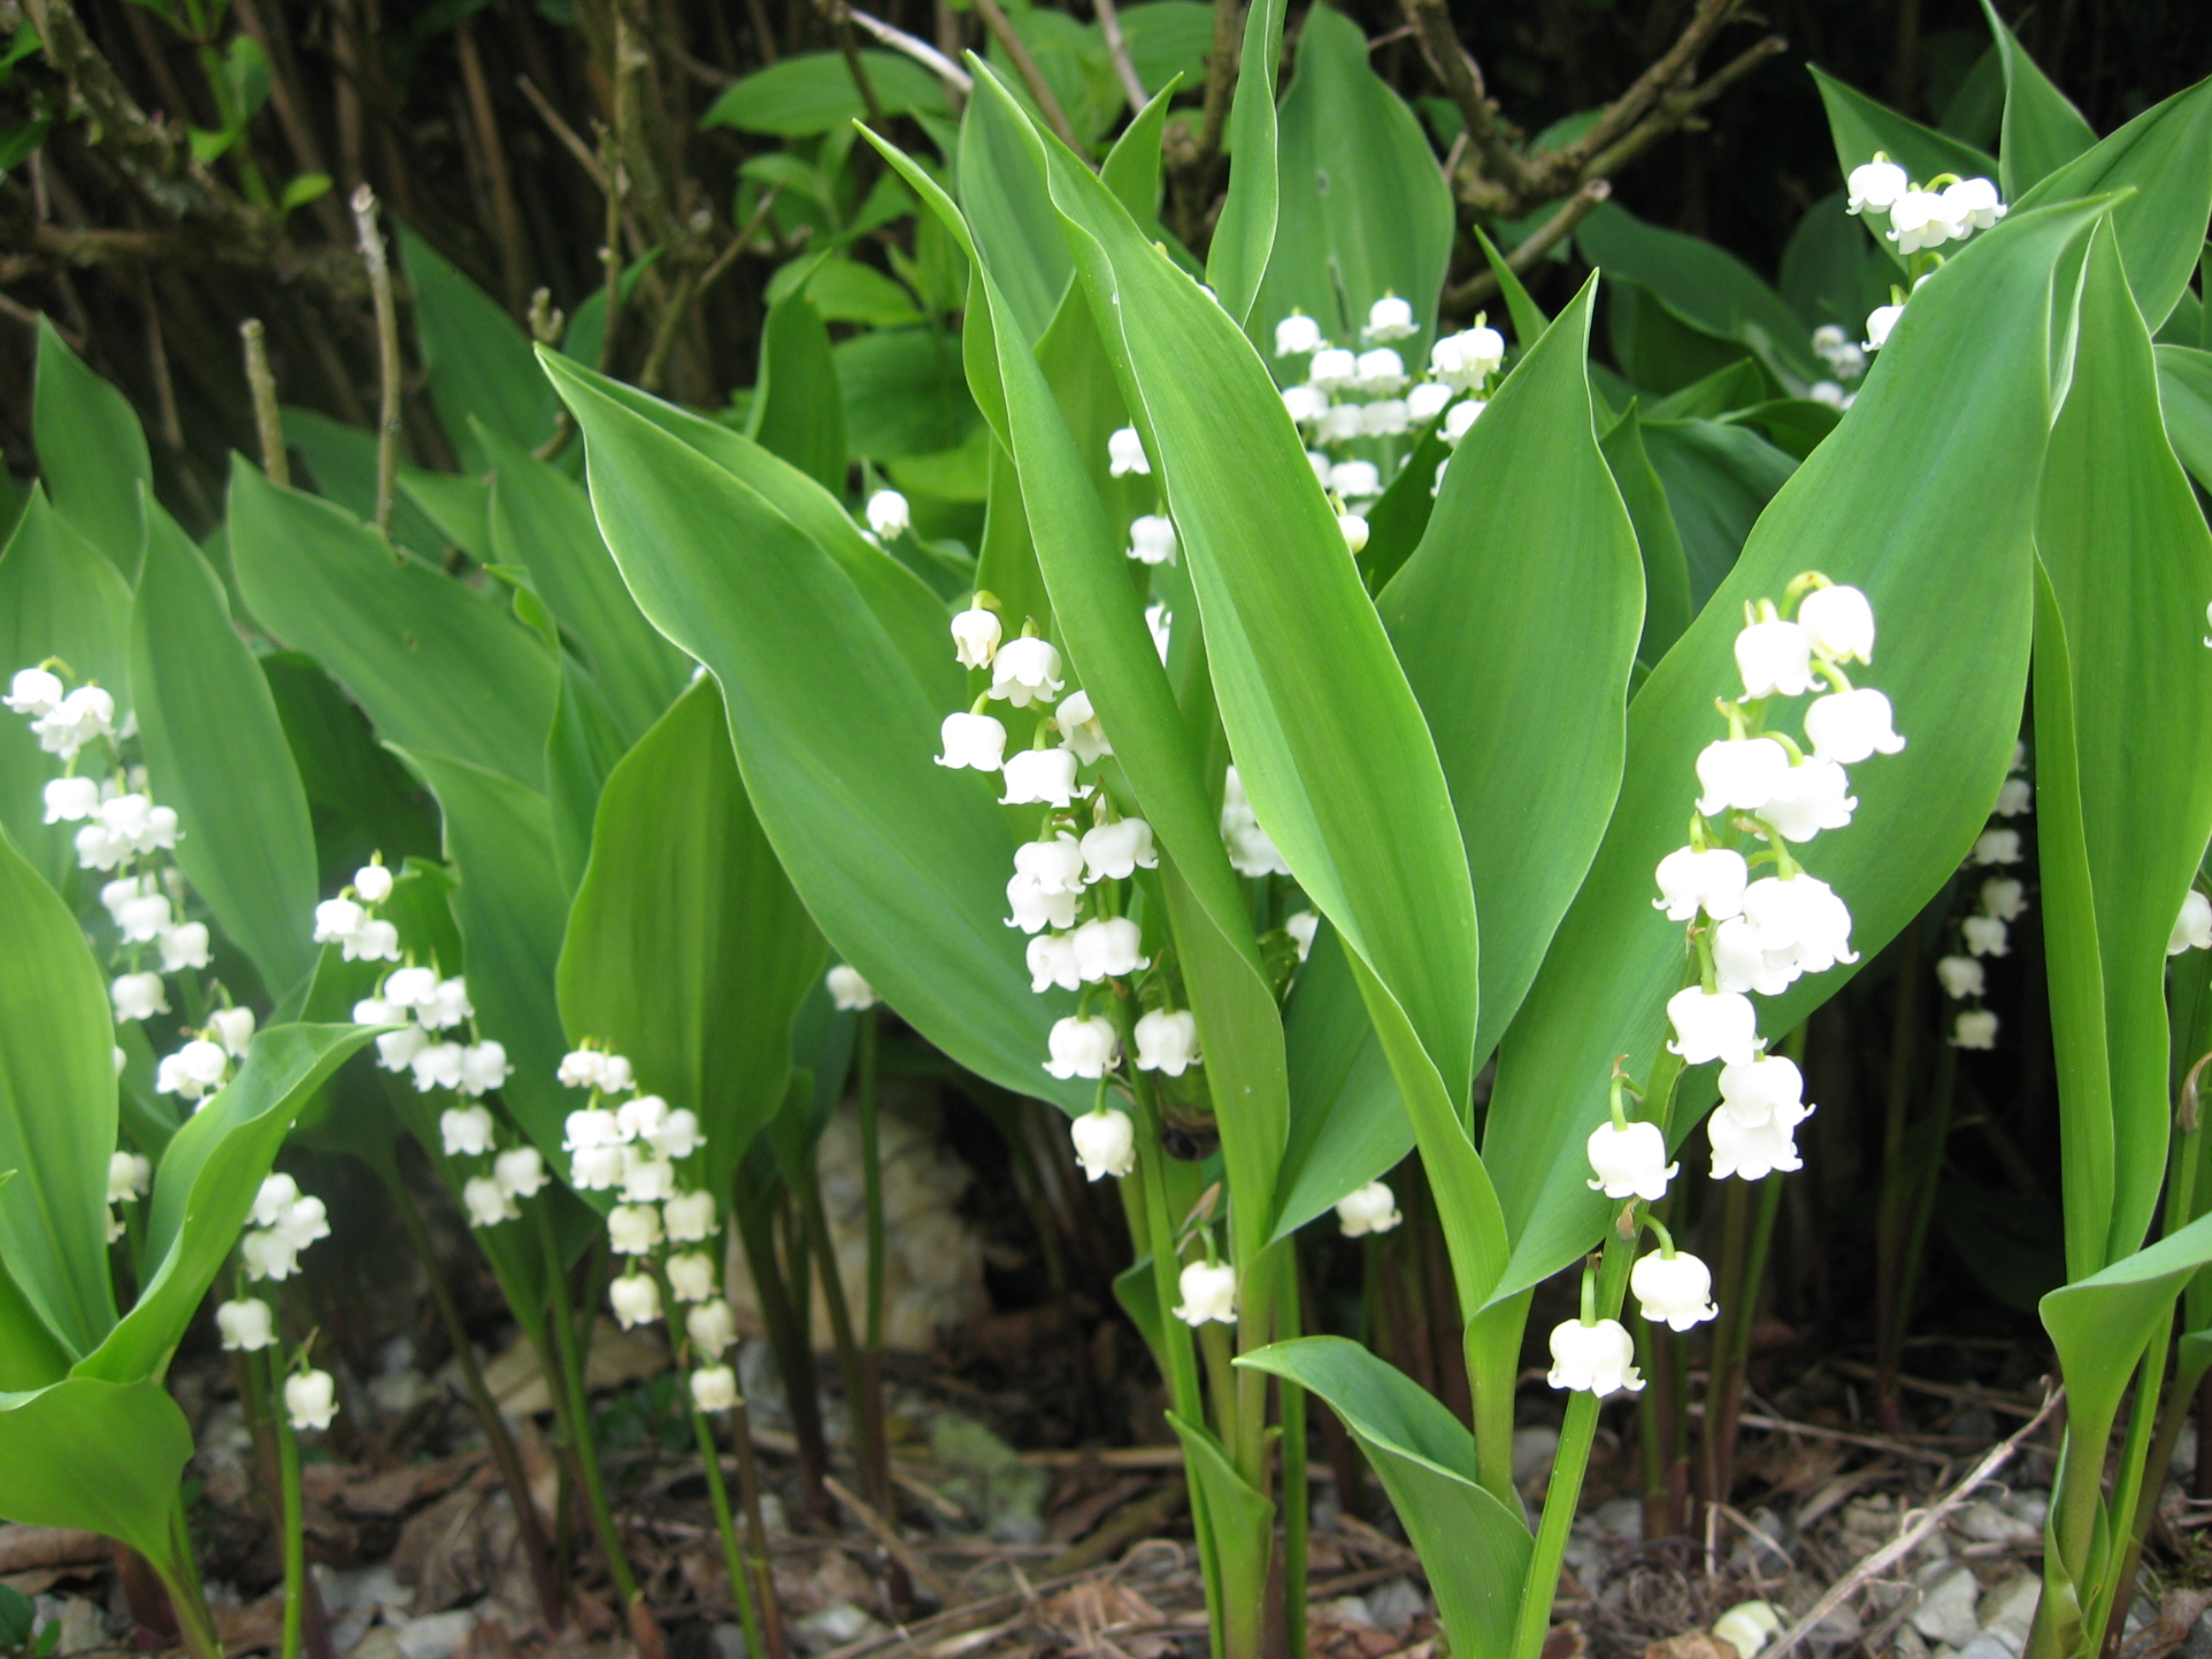 Lily of the valley - 03 photo